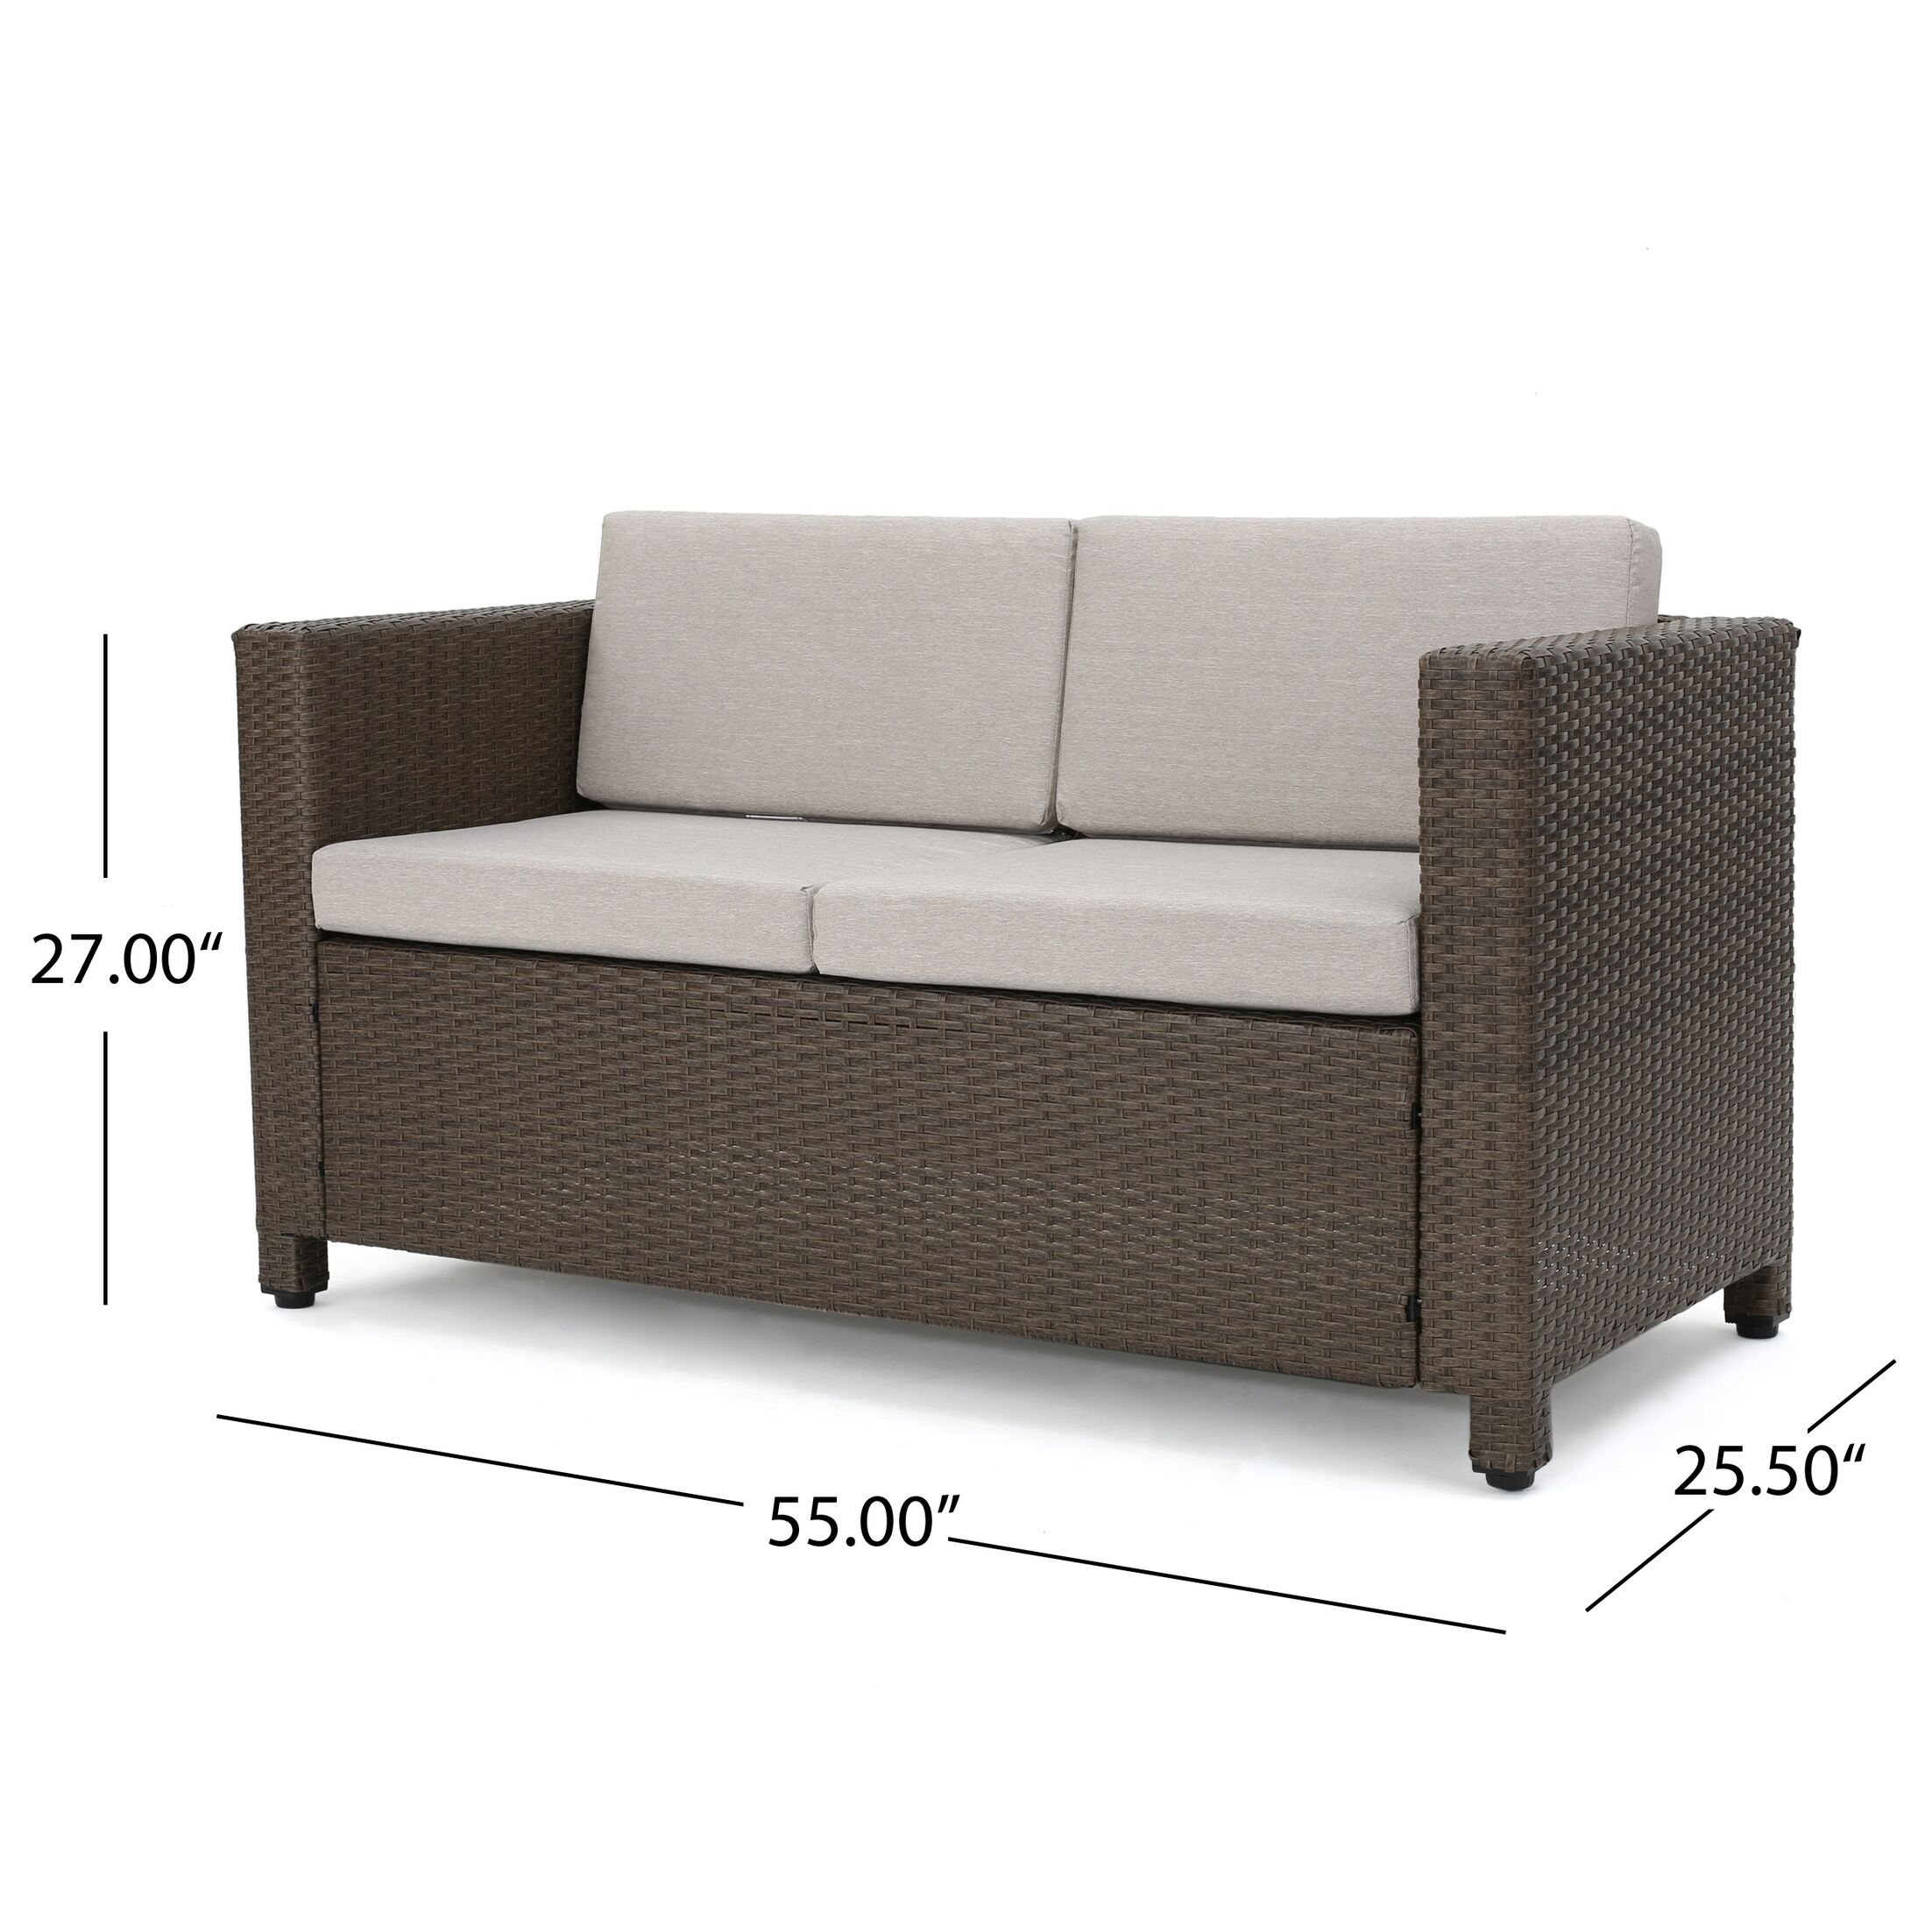 Ardal Outdoor Rattan Loveseat and Table Set with Cushions Frame Finish: Brown, Cushion Color: Ceramic Grey